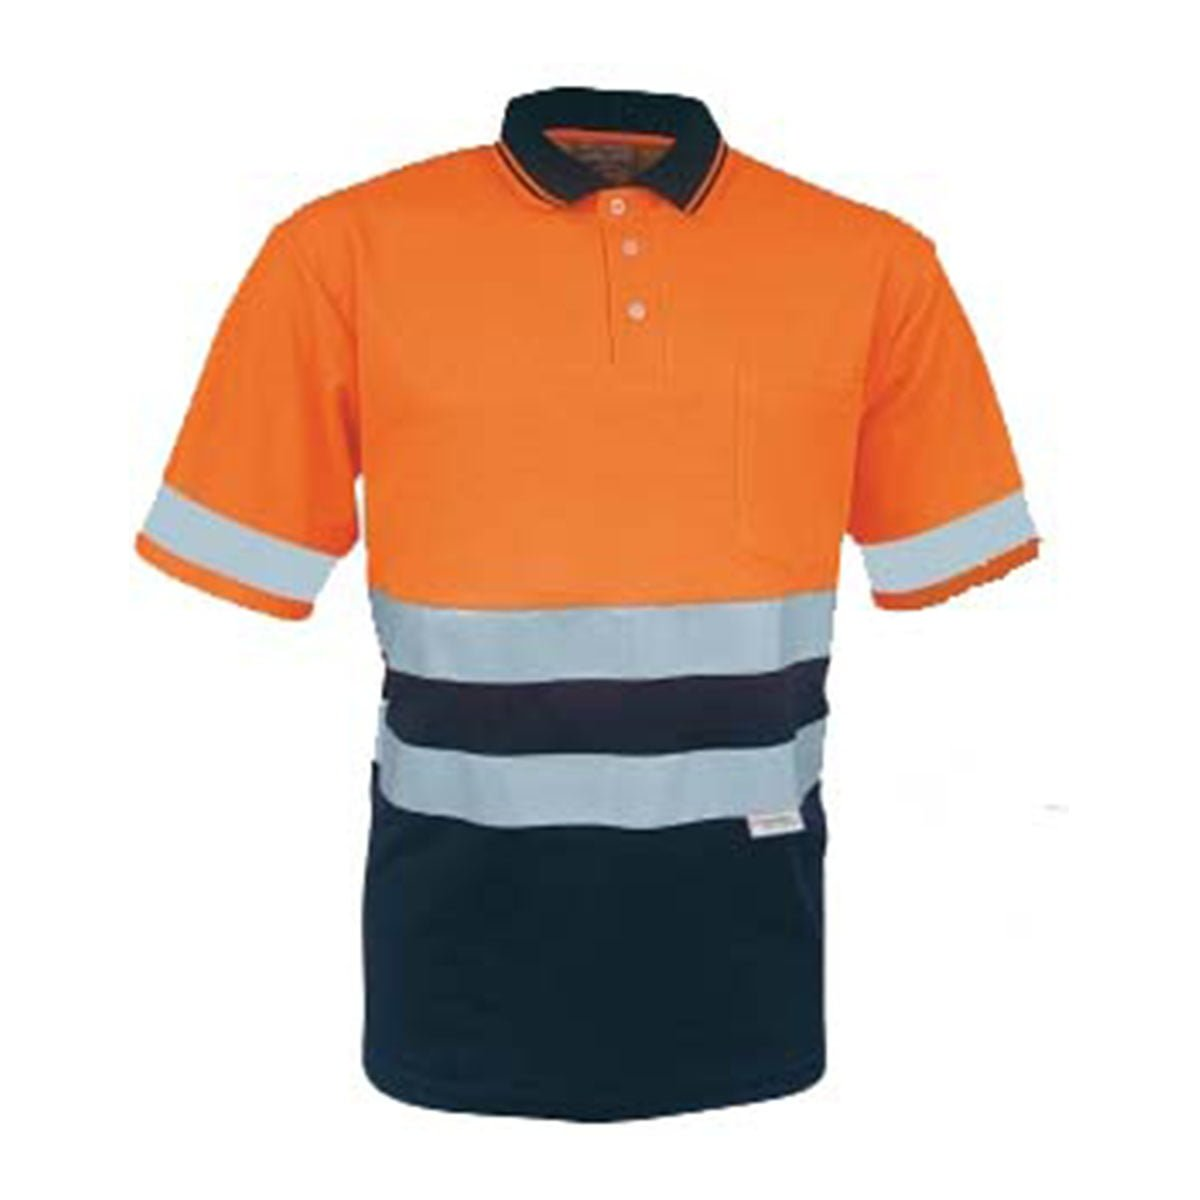 HI-VIS POLYFACE/COTTON BACK POLO WITH 3M TAPE -S/S-Orange / Navy